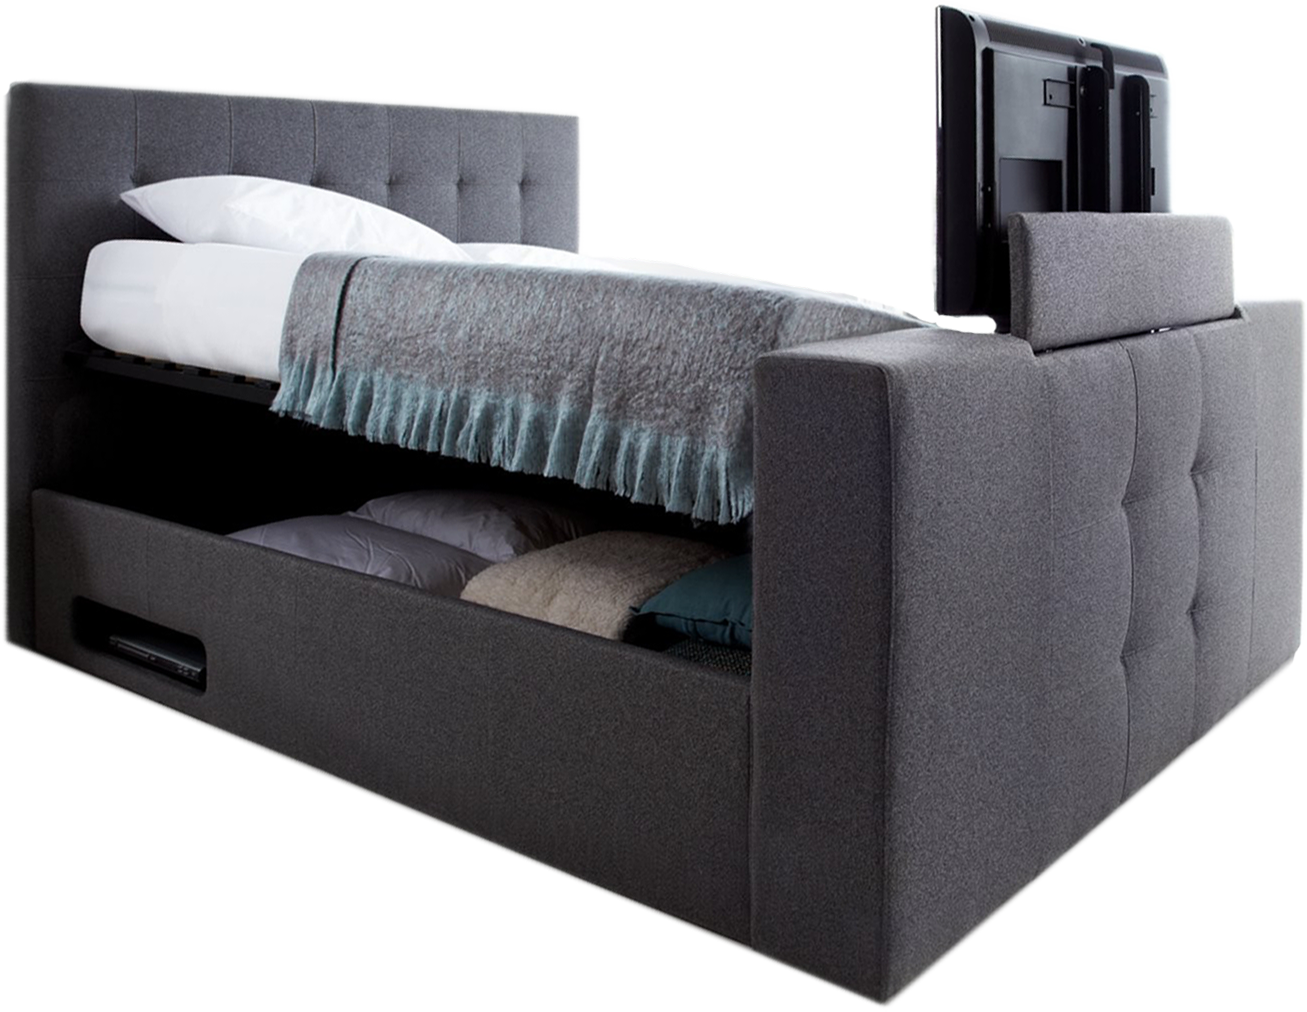 Groovy Dream Ottoman Tv Bed Available From Time4Sleep Co Uk Theyellowbook Wood Chair Design Ideas Theyellowbookinfo